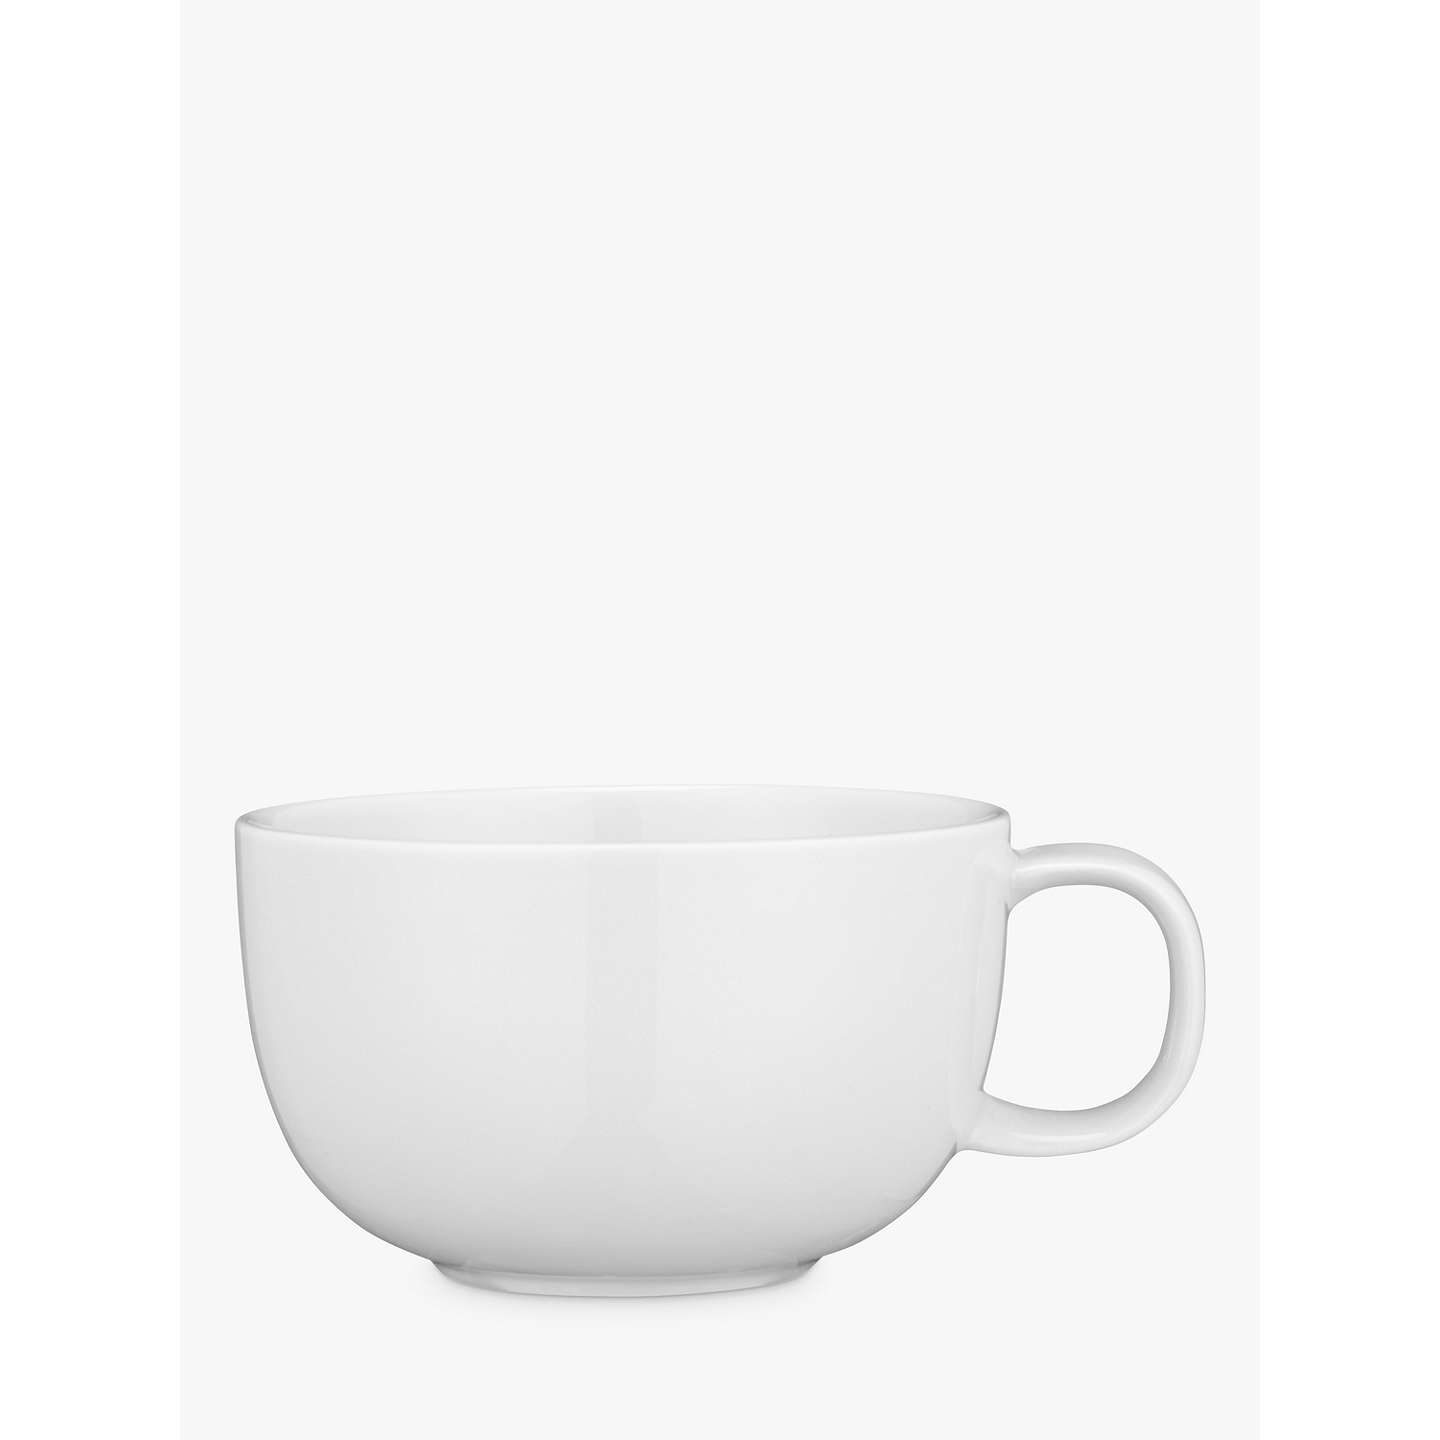 BuyHouse by John Lewis Eat Teacup, White Online at johnlewis.com